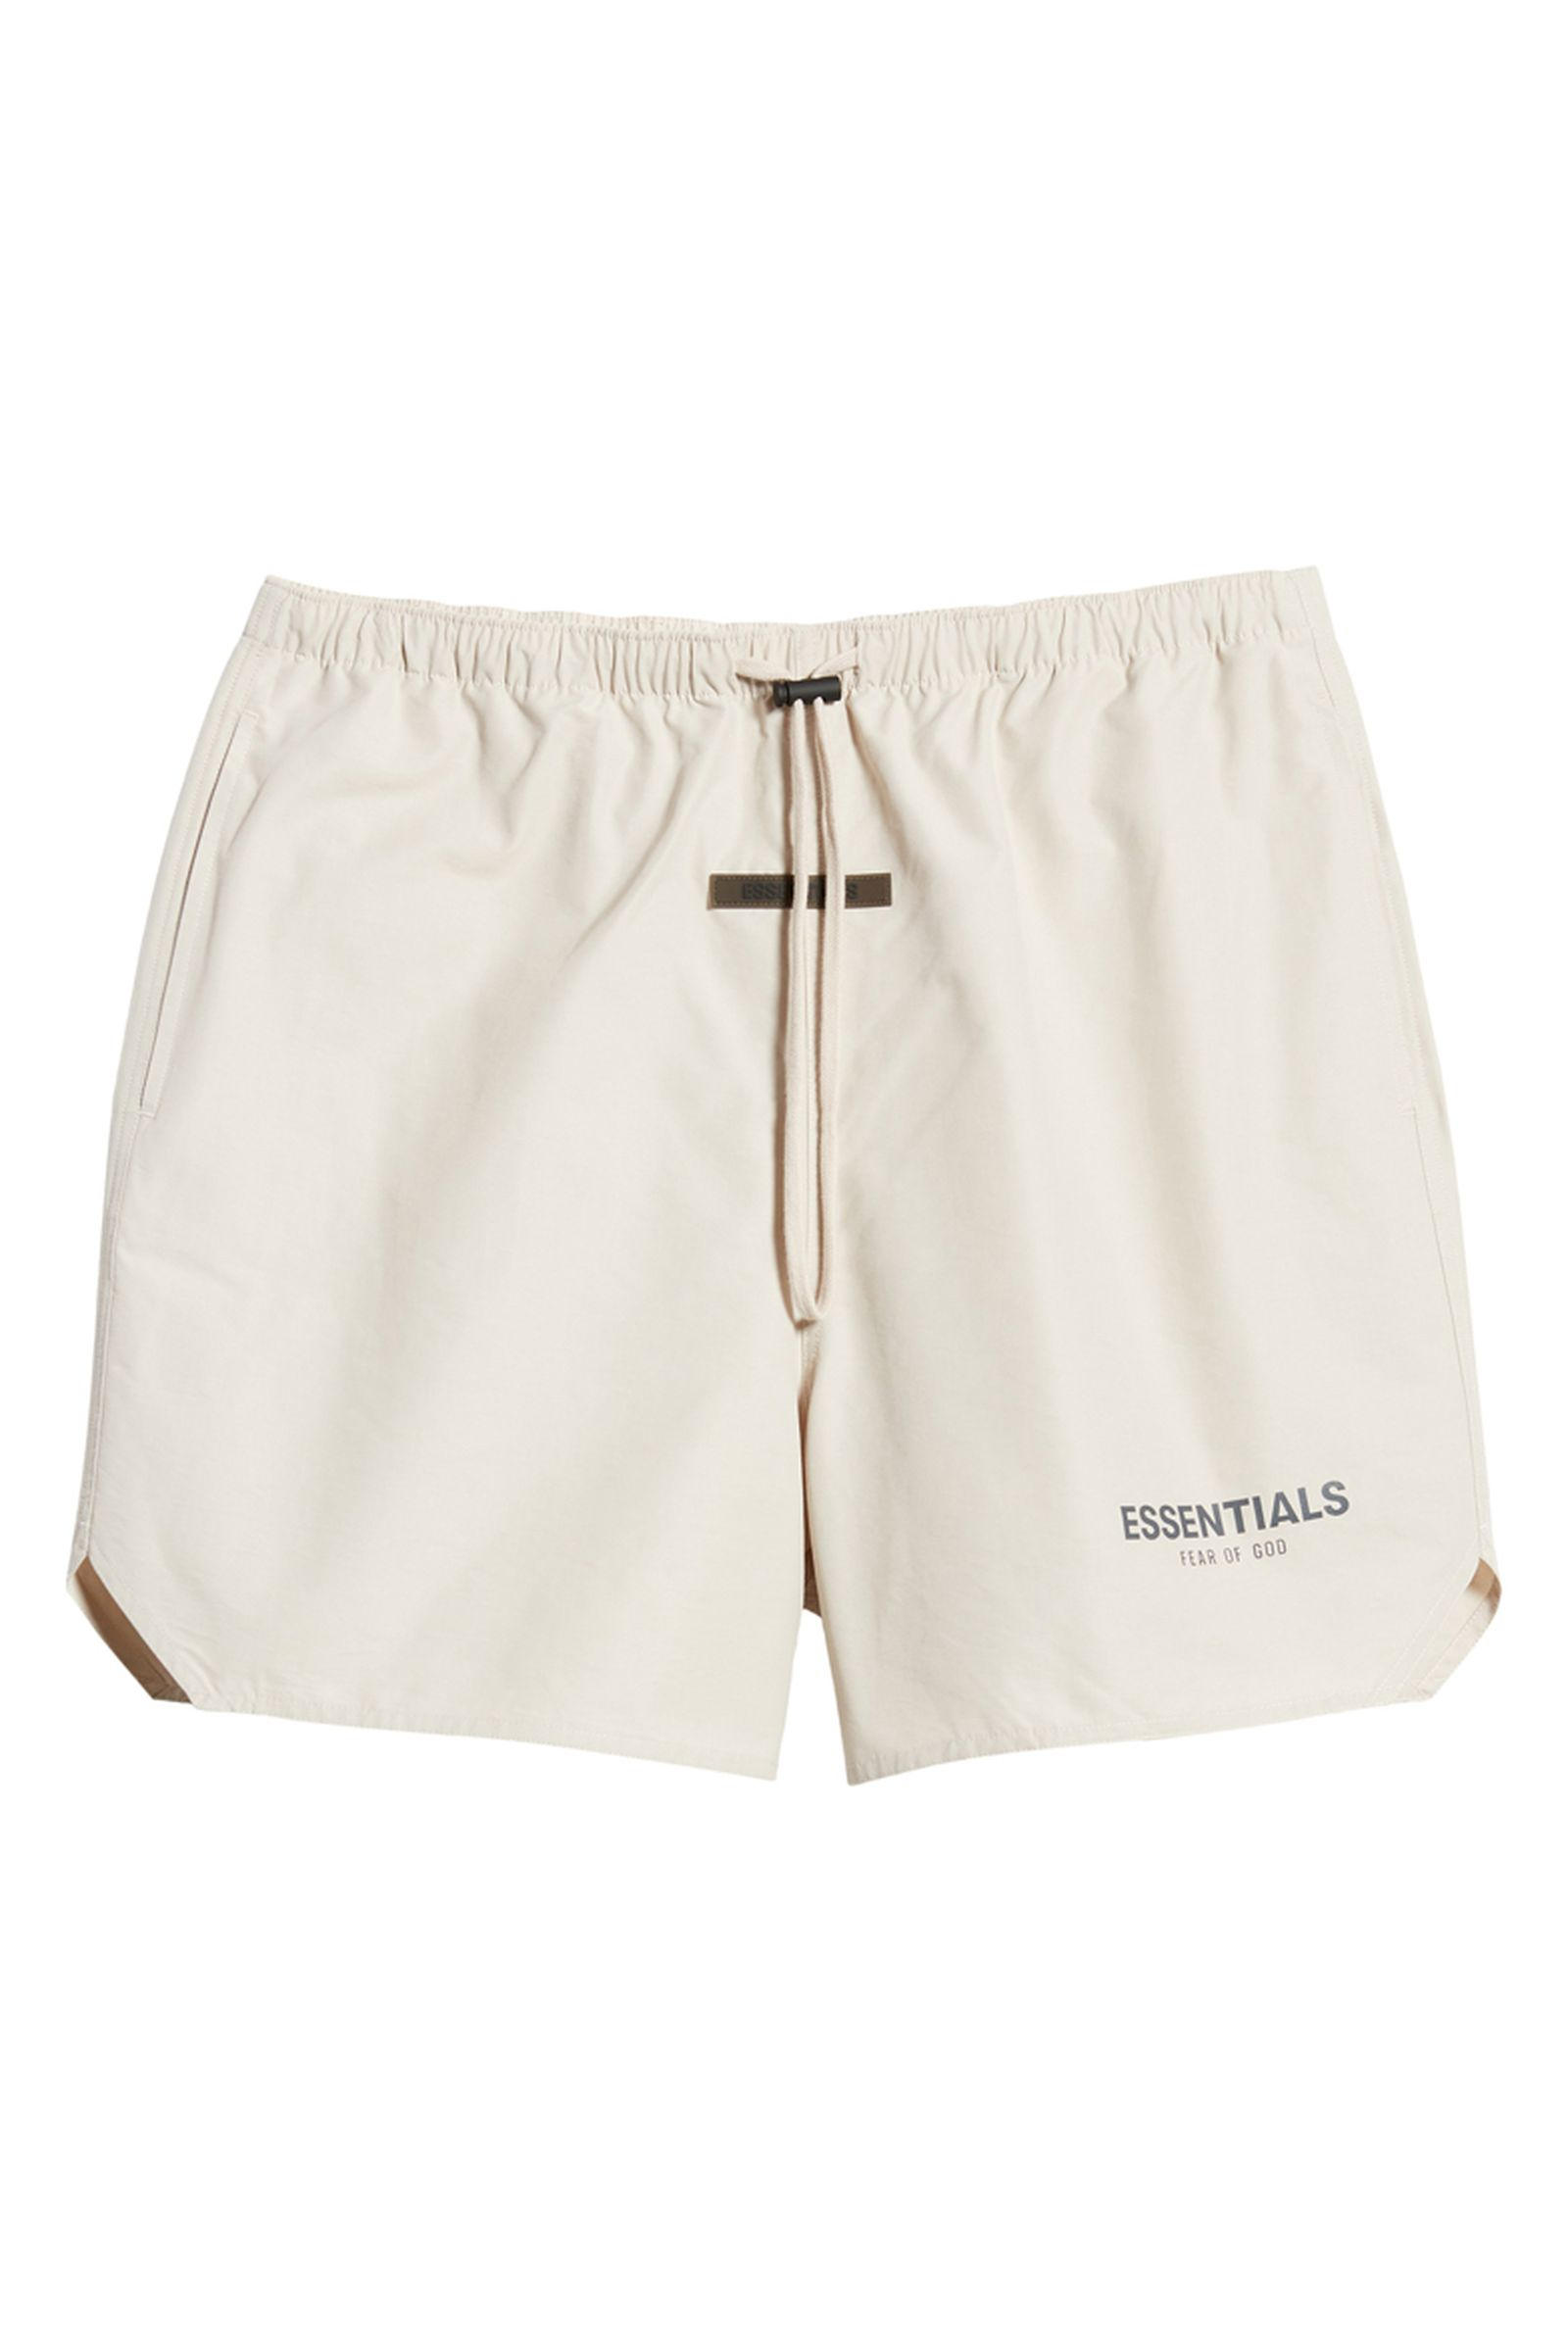 fear of god essentials nordstrom exclusive (21)